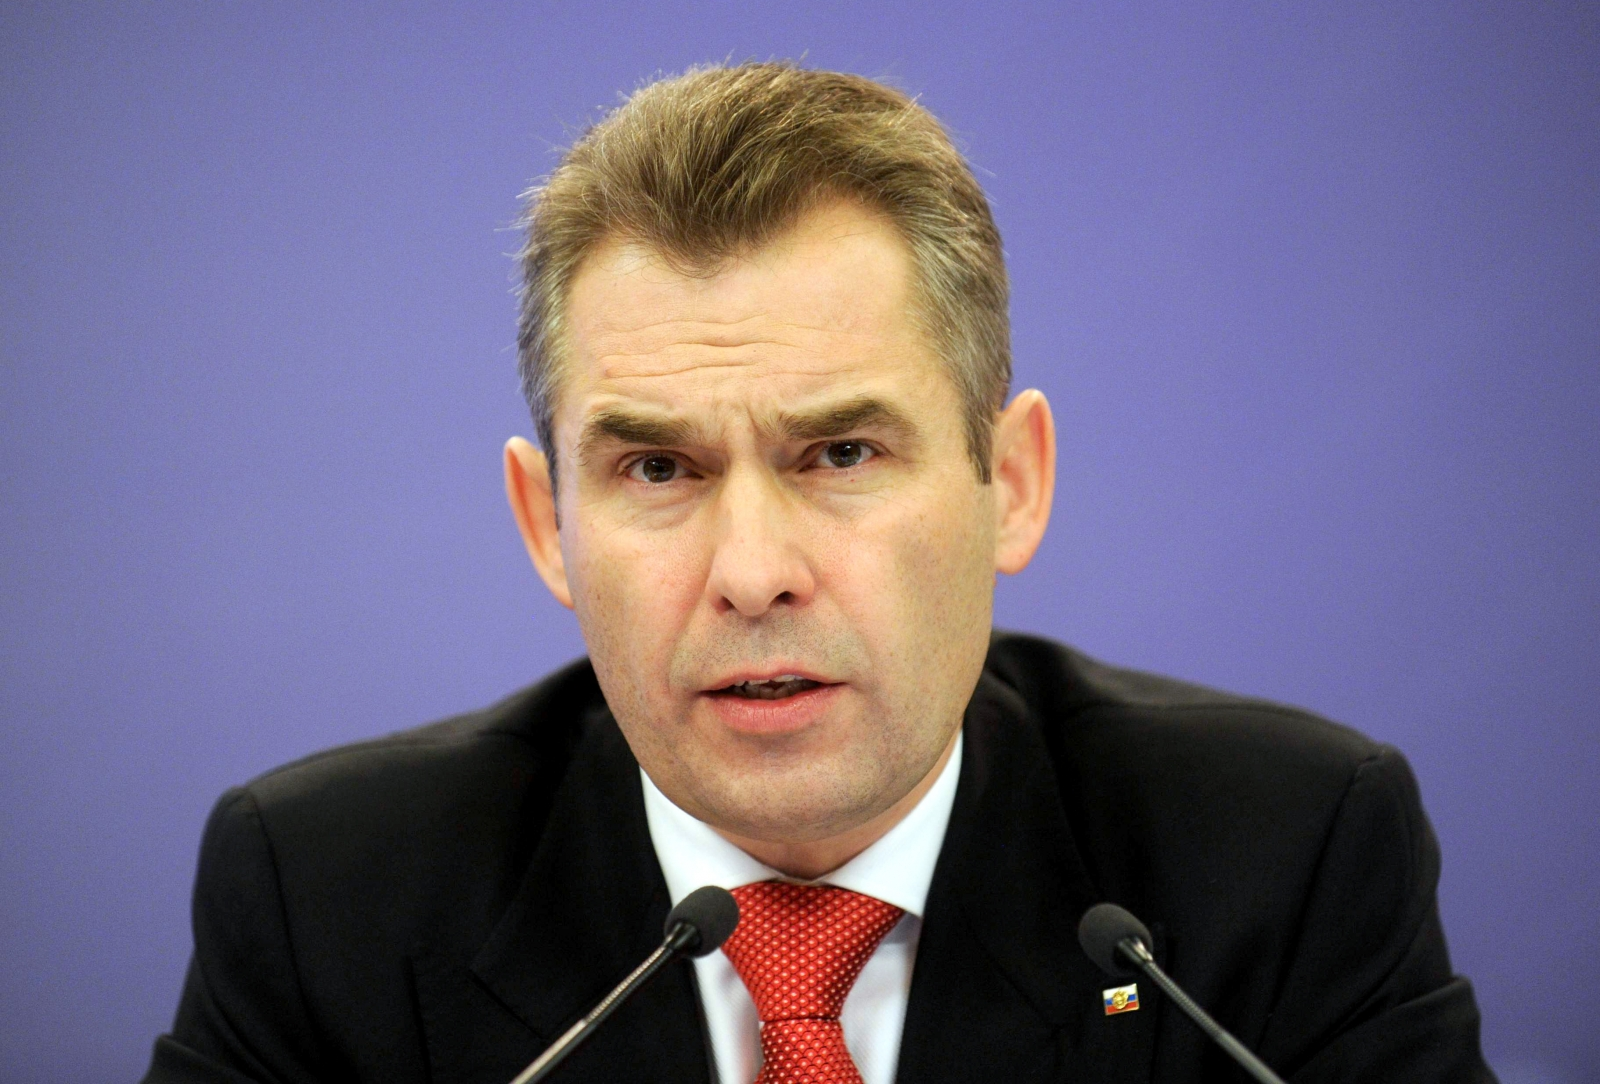 Pavel Astakhov, Russian Children's Ombudsman